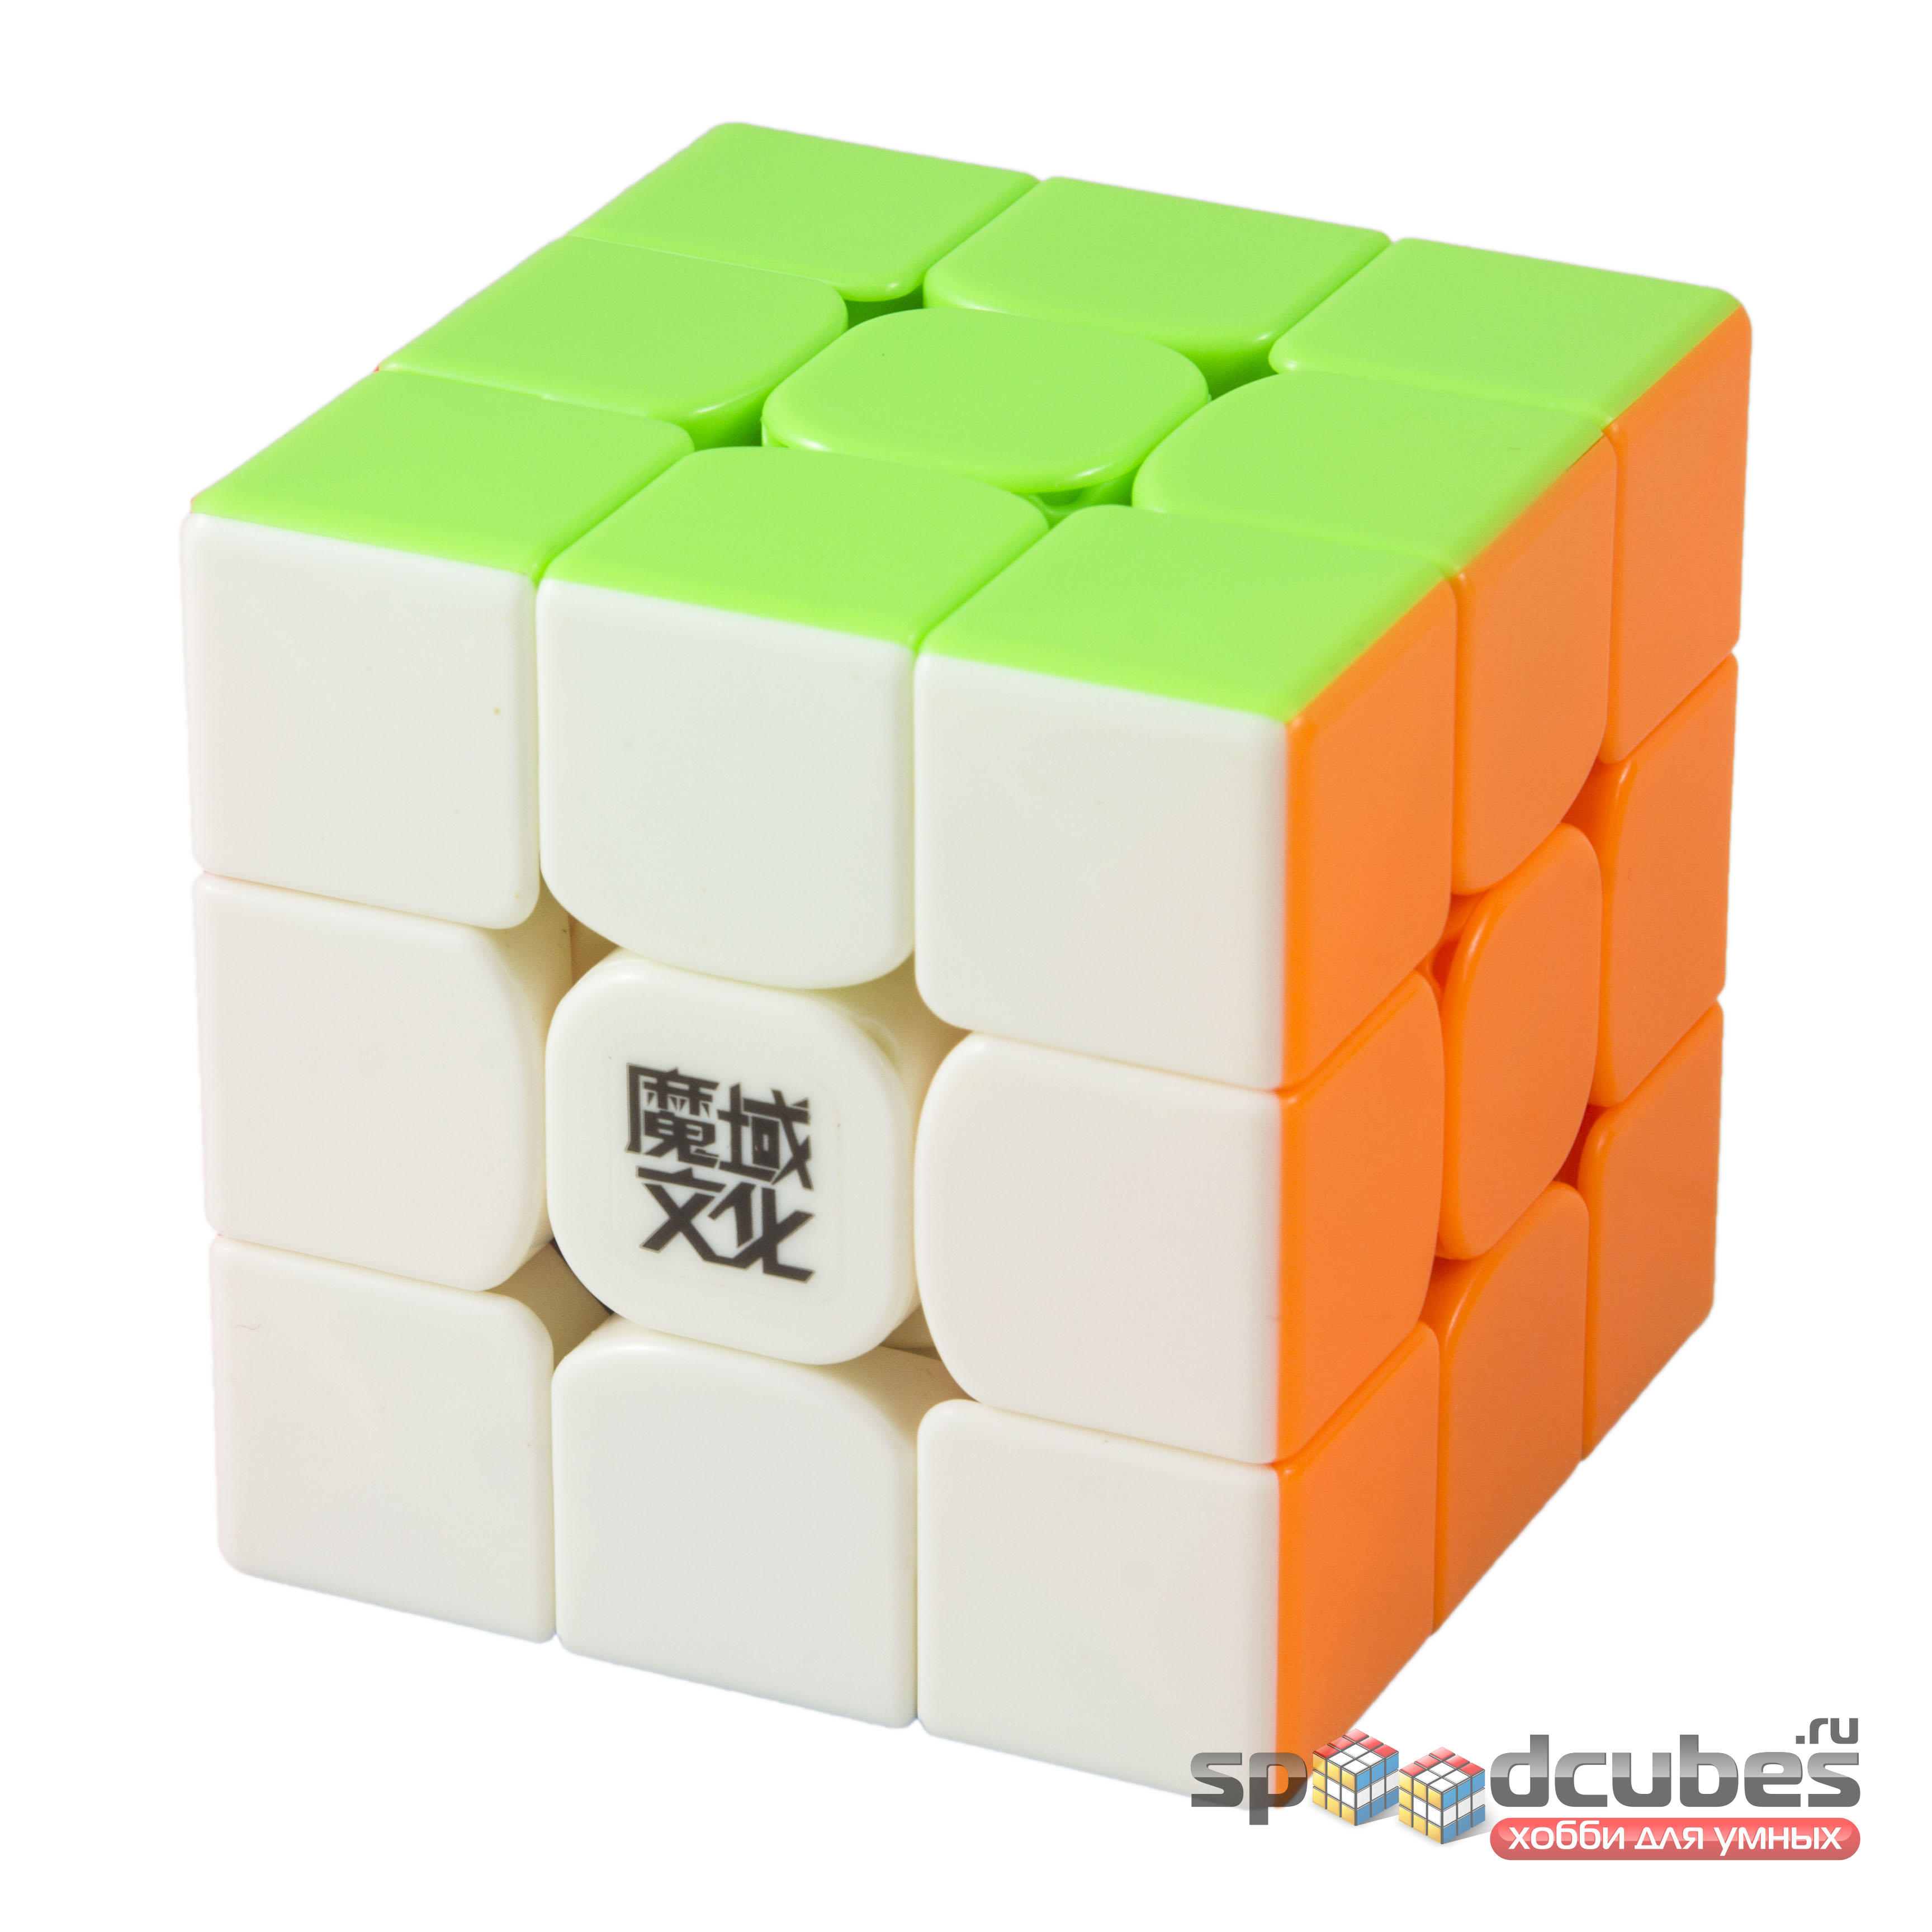 Moyu 3x3x3 Weilong Gts V2 Color 3